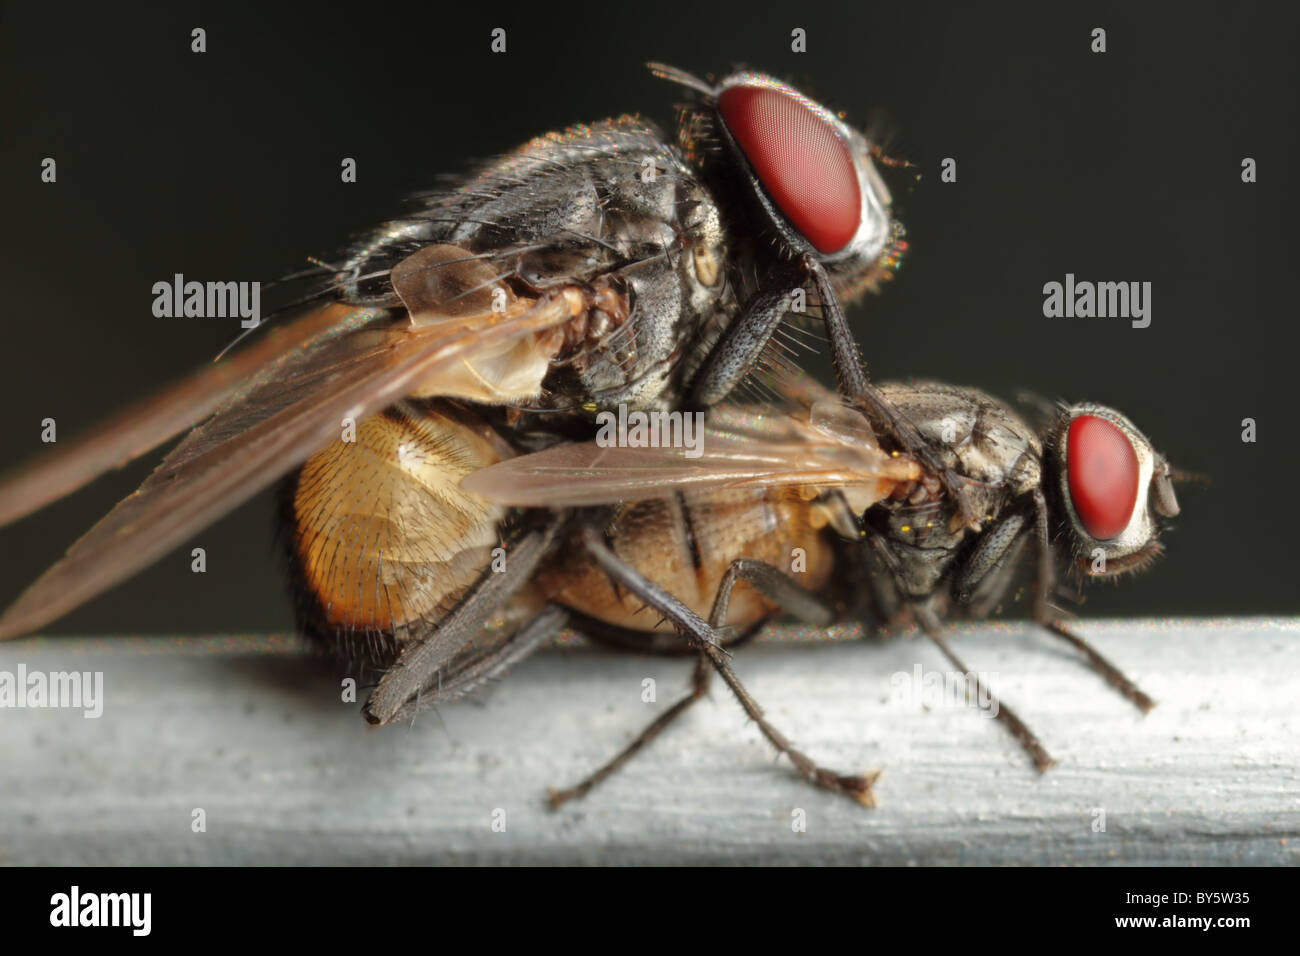 Two flies in the middle of mating process - Stock Image